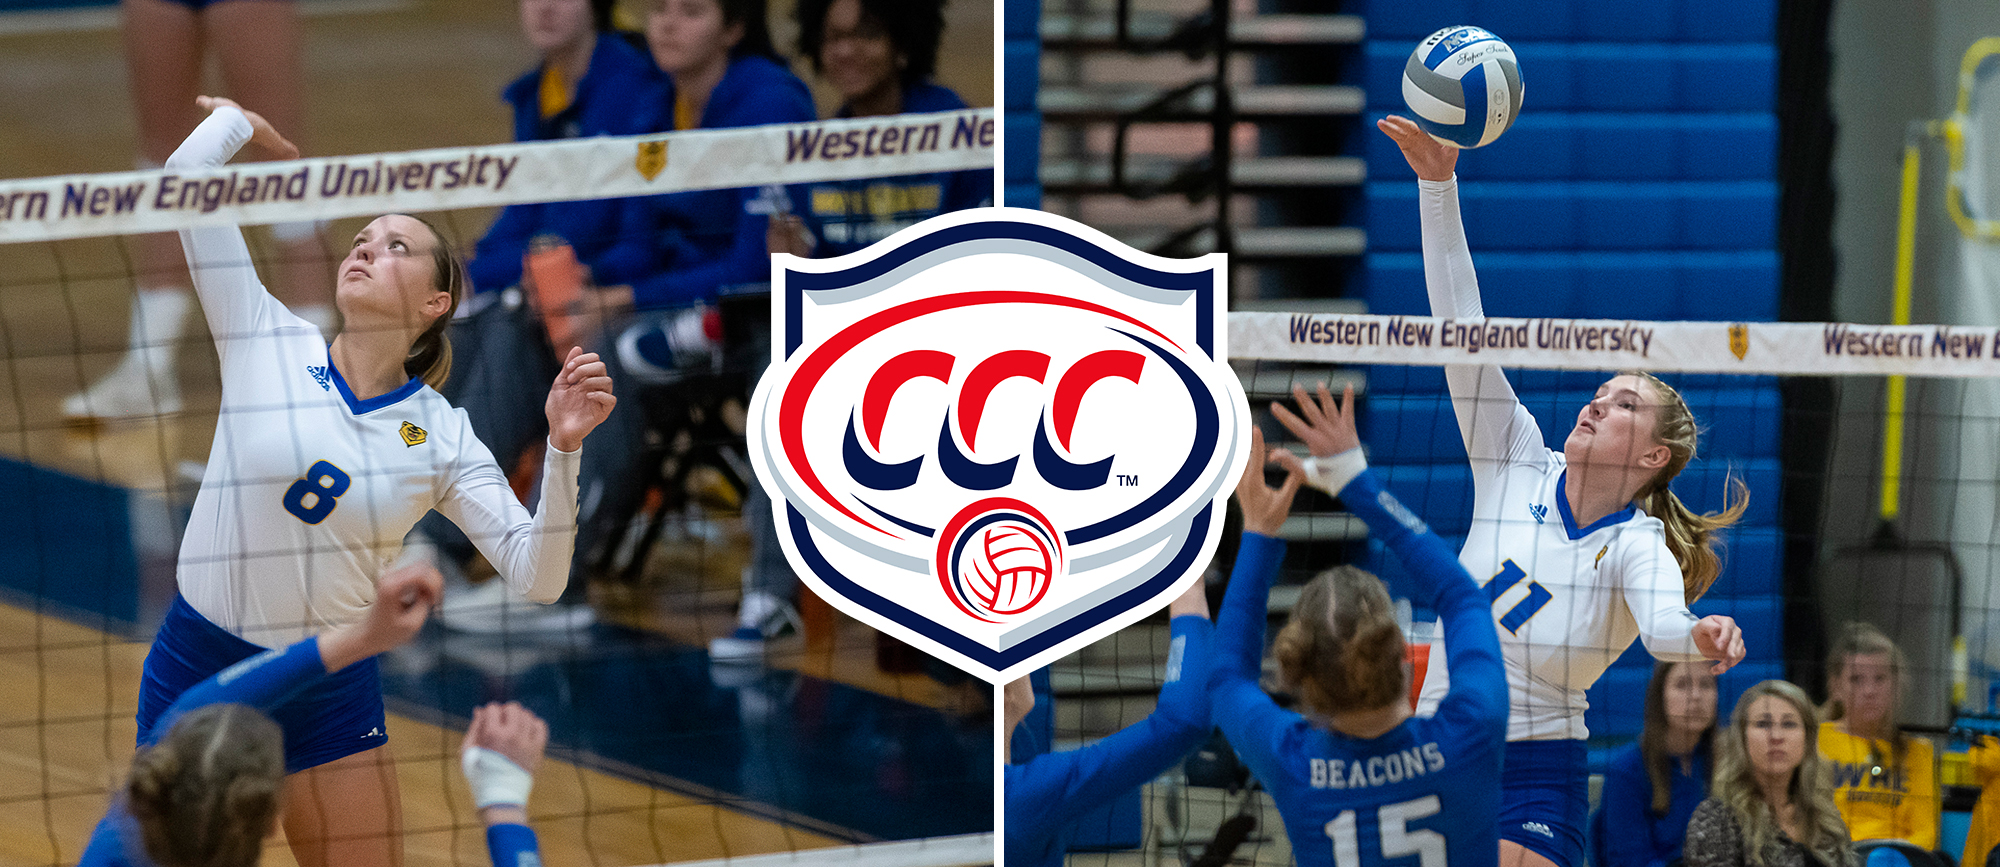 Matthews & Holmes Receive All-CCC Recognition